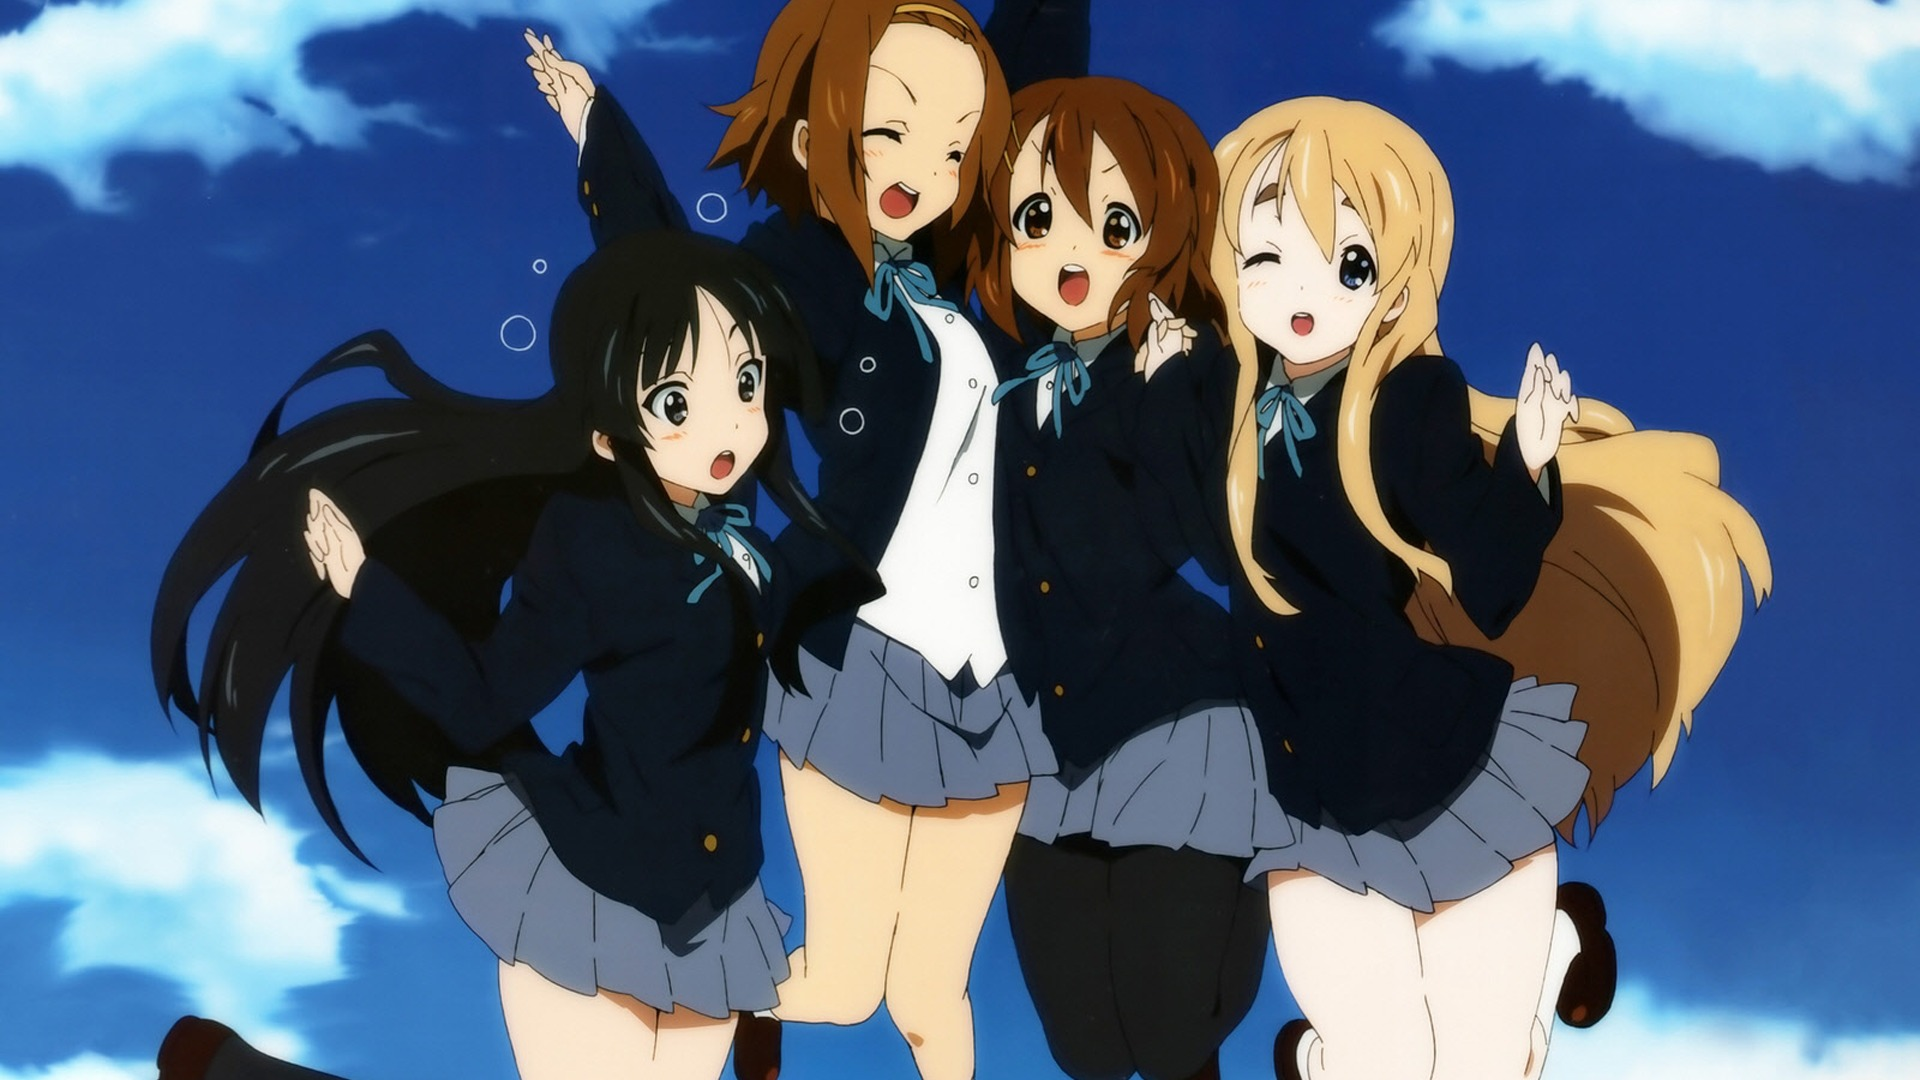 K-ON! Full HD Wallpaper and Background Image   1920x1080 ...